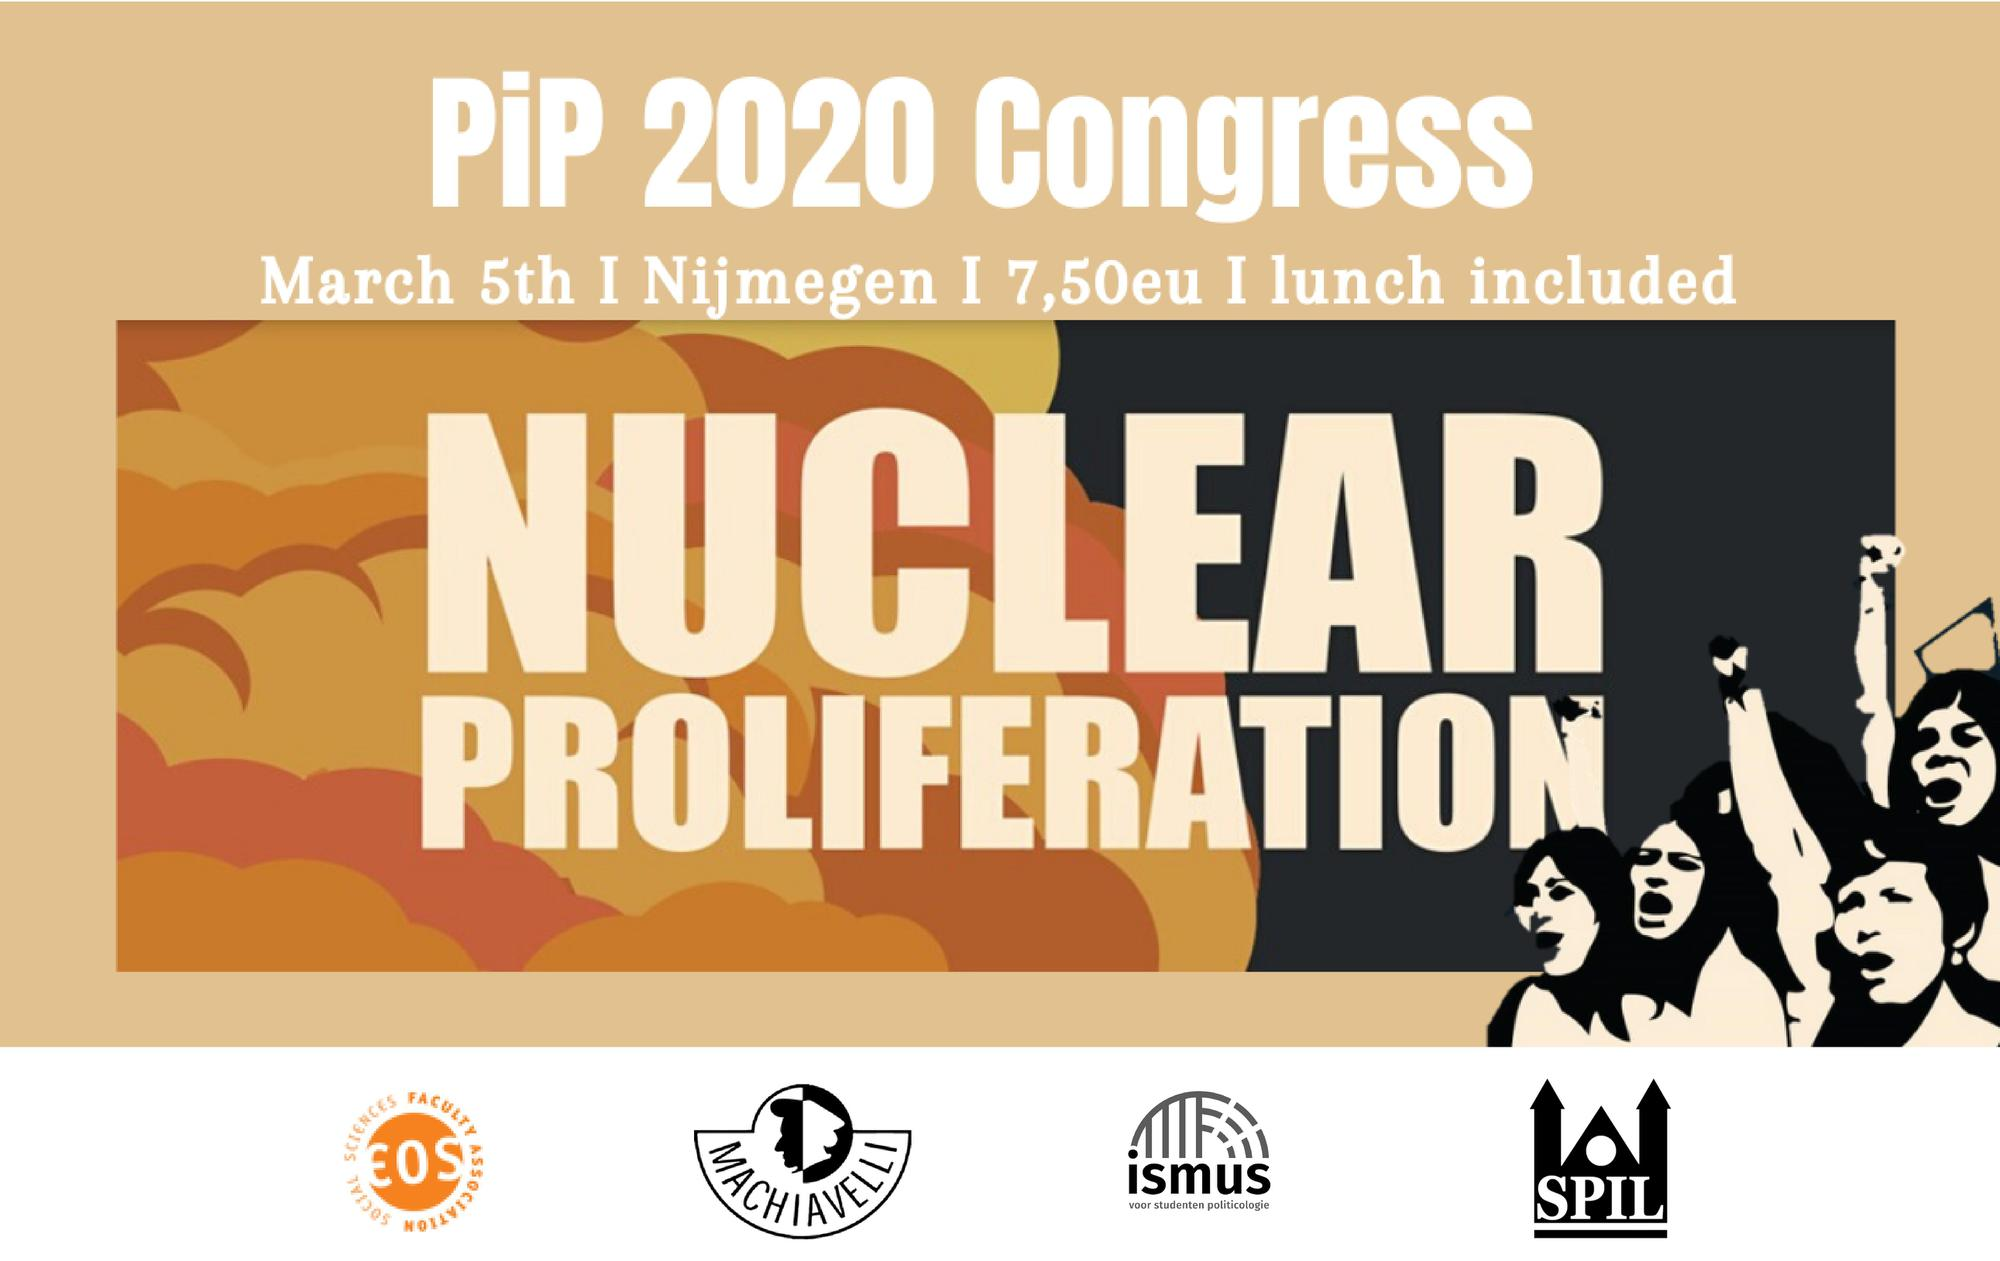 PiP 2020: Nuclear Proliferation